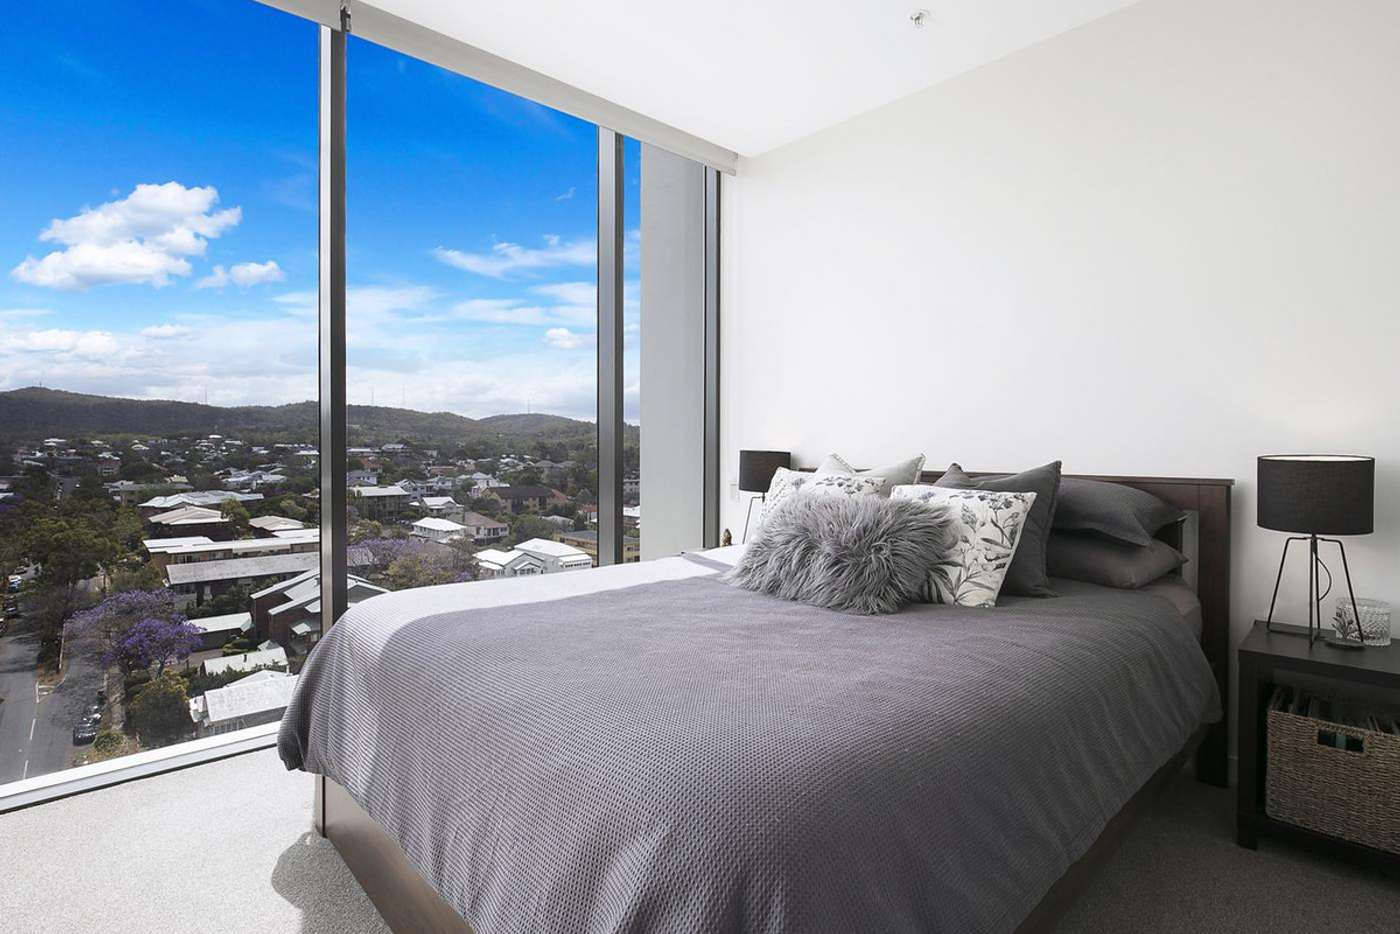 Sixth view of Homely apartment listing, 1107/48 Jephson Street, Toowong QLD 4066